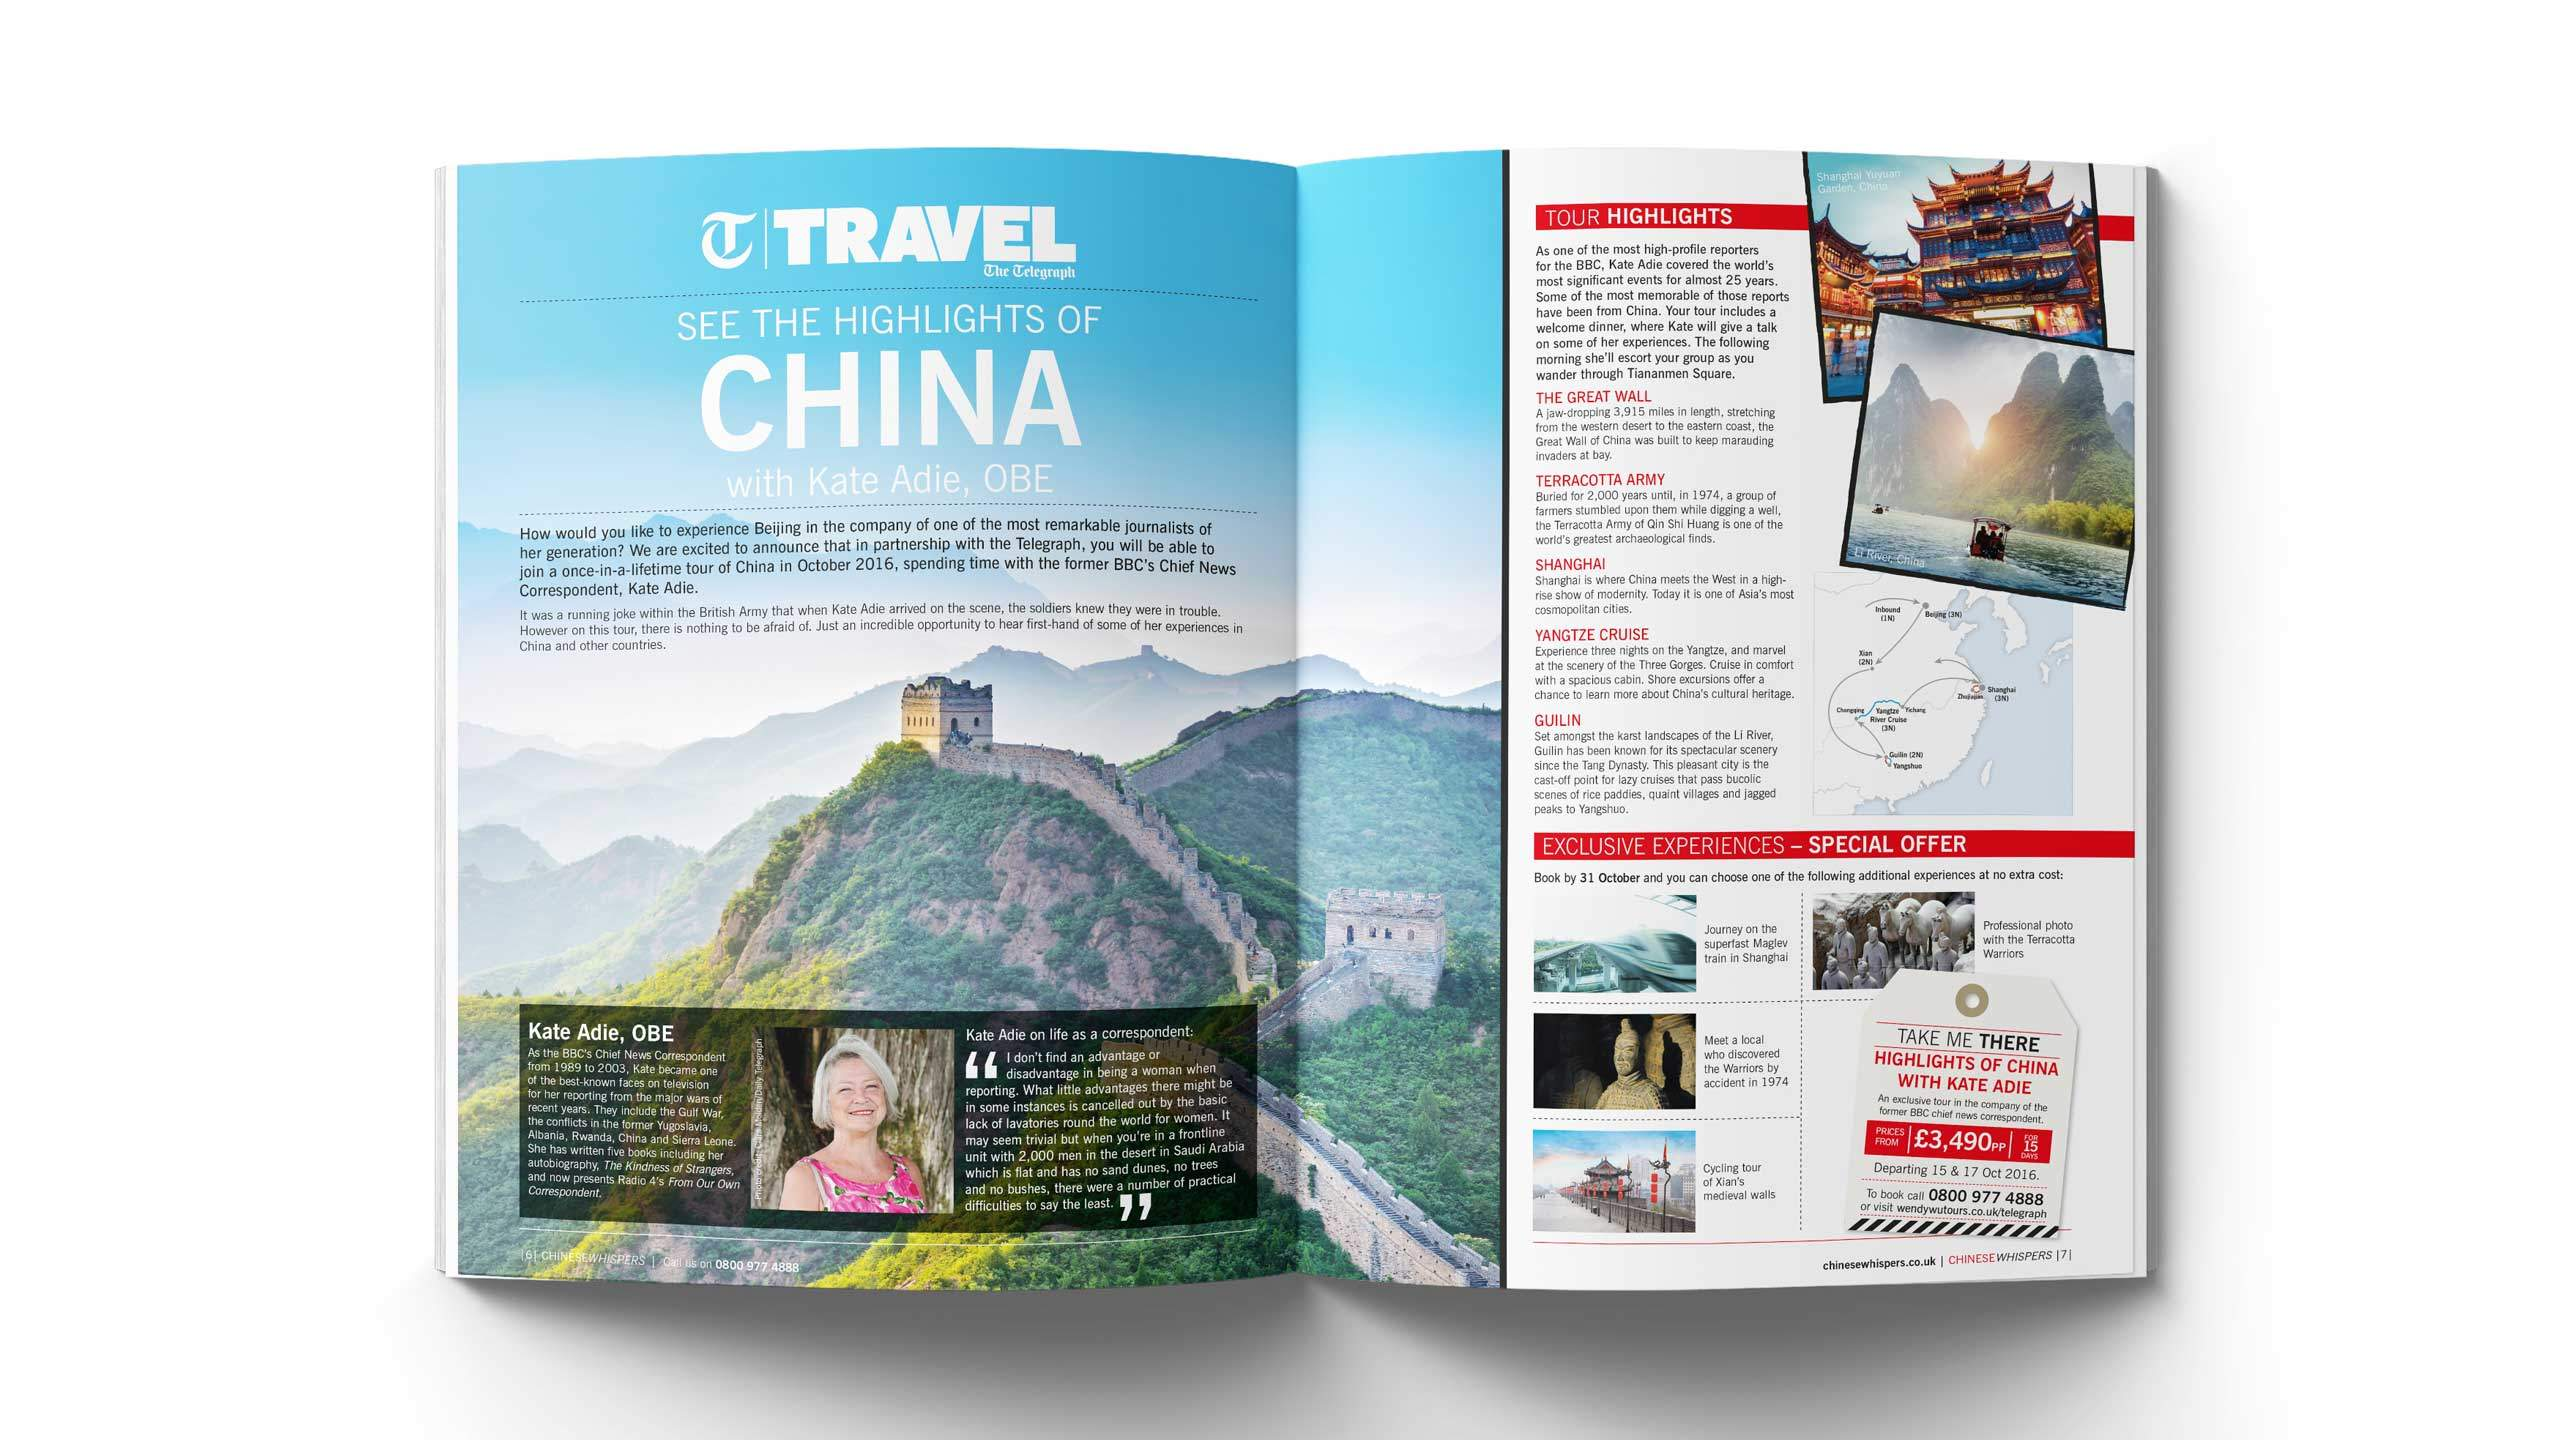 travel company brochure design china highlights kate adie pages wendy wu